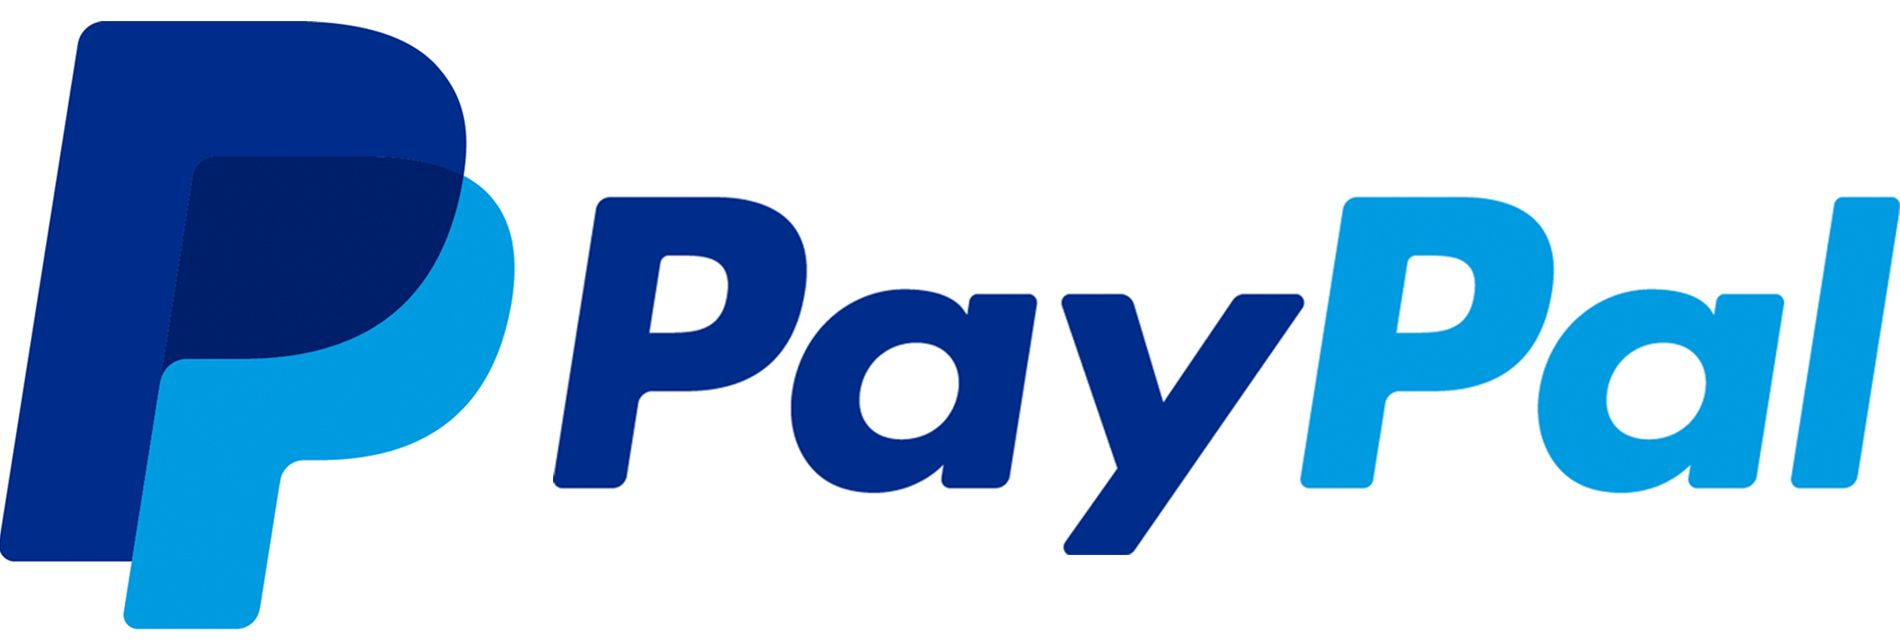 Stores That Accept Paypal Credit Online >> We Accept Paypal Paypal Hacks Online Branding Cashback